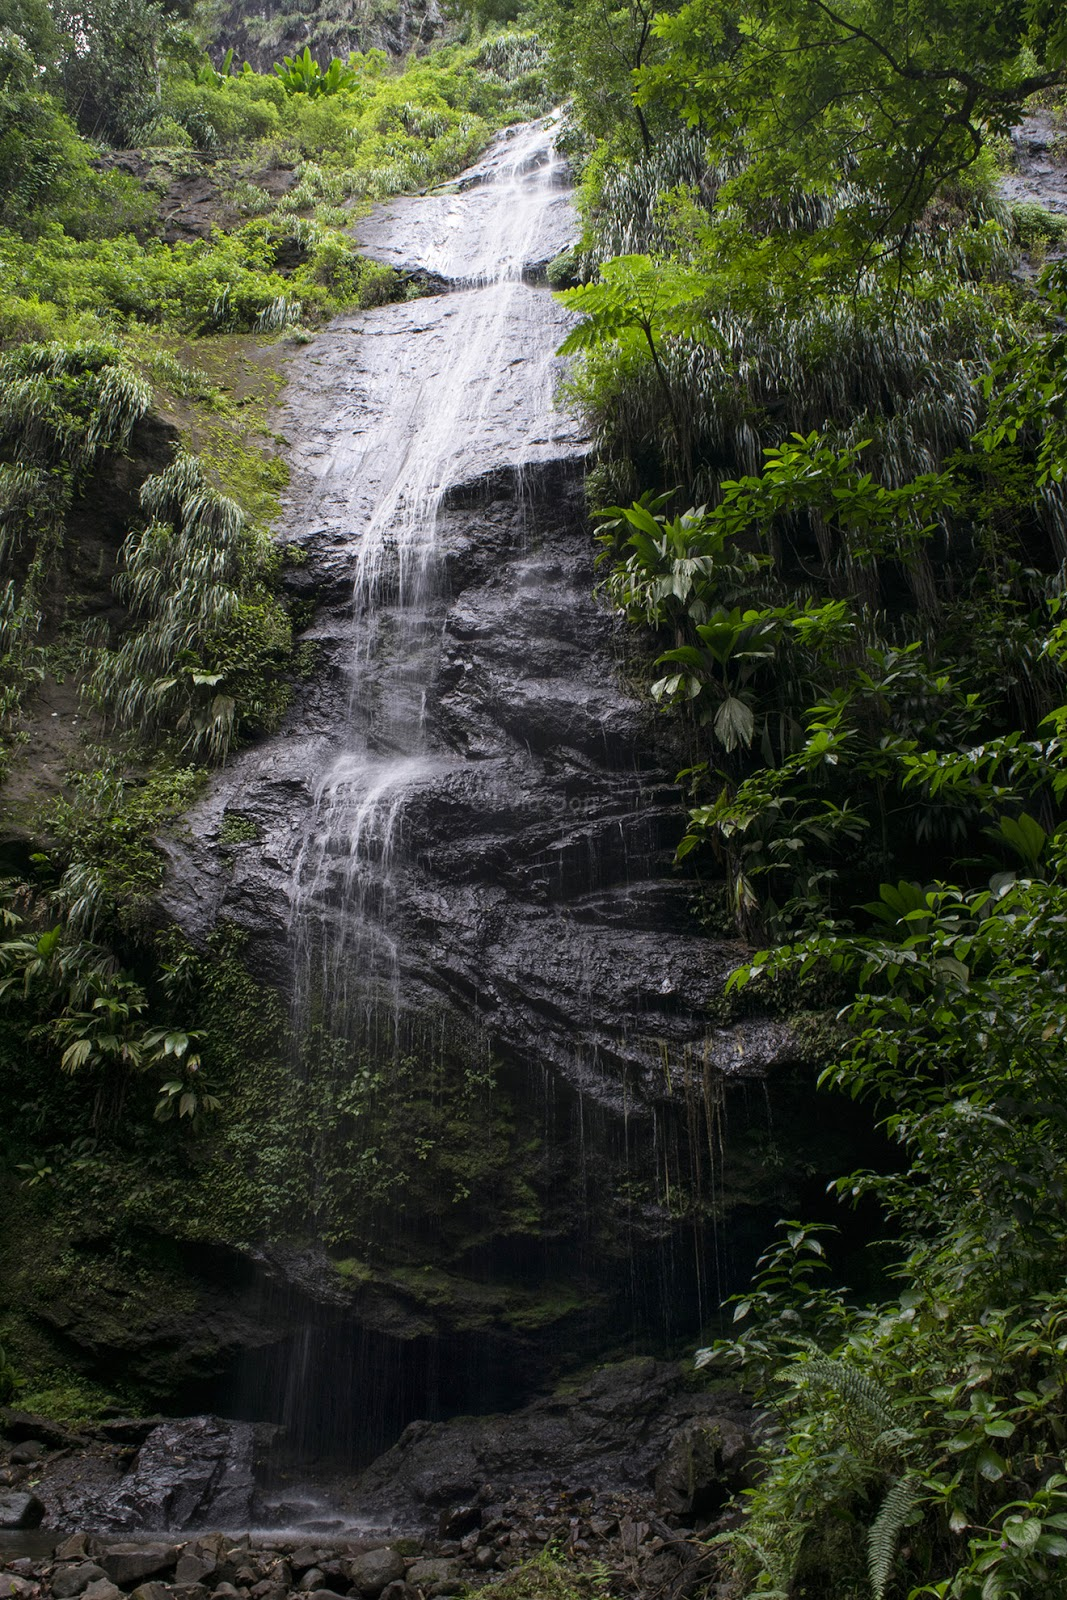 Cascade Couleuvre